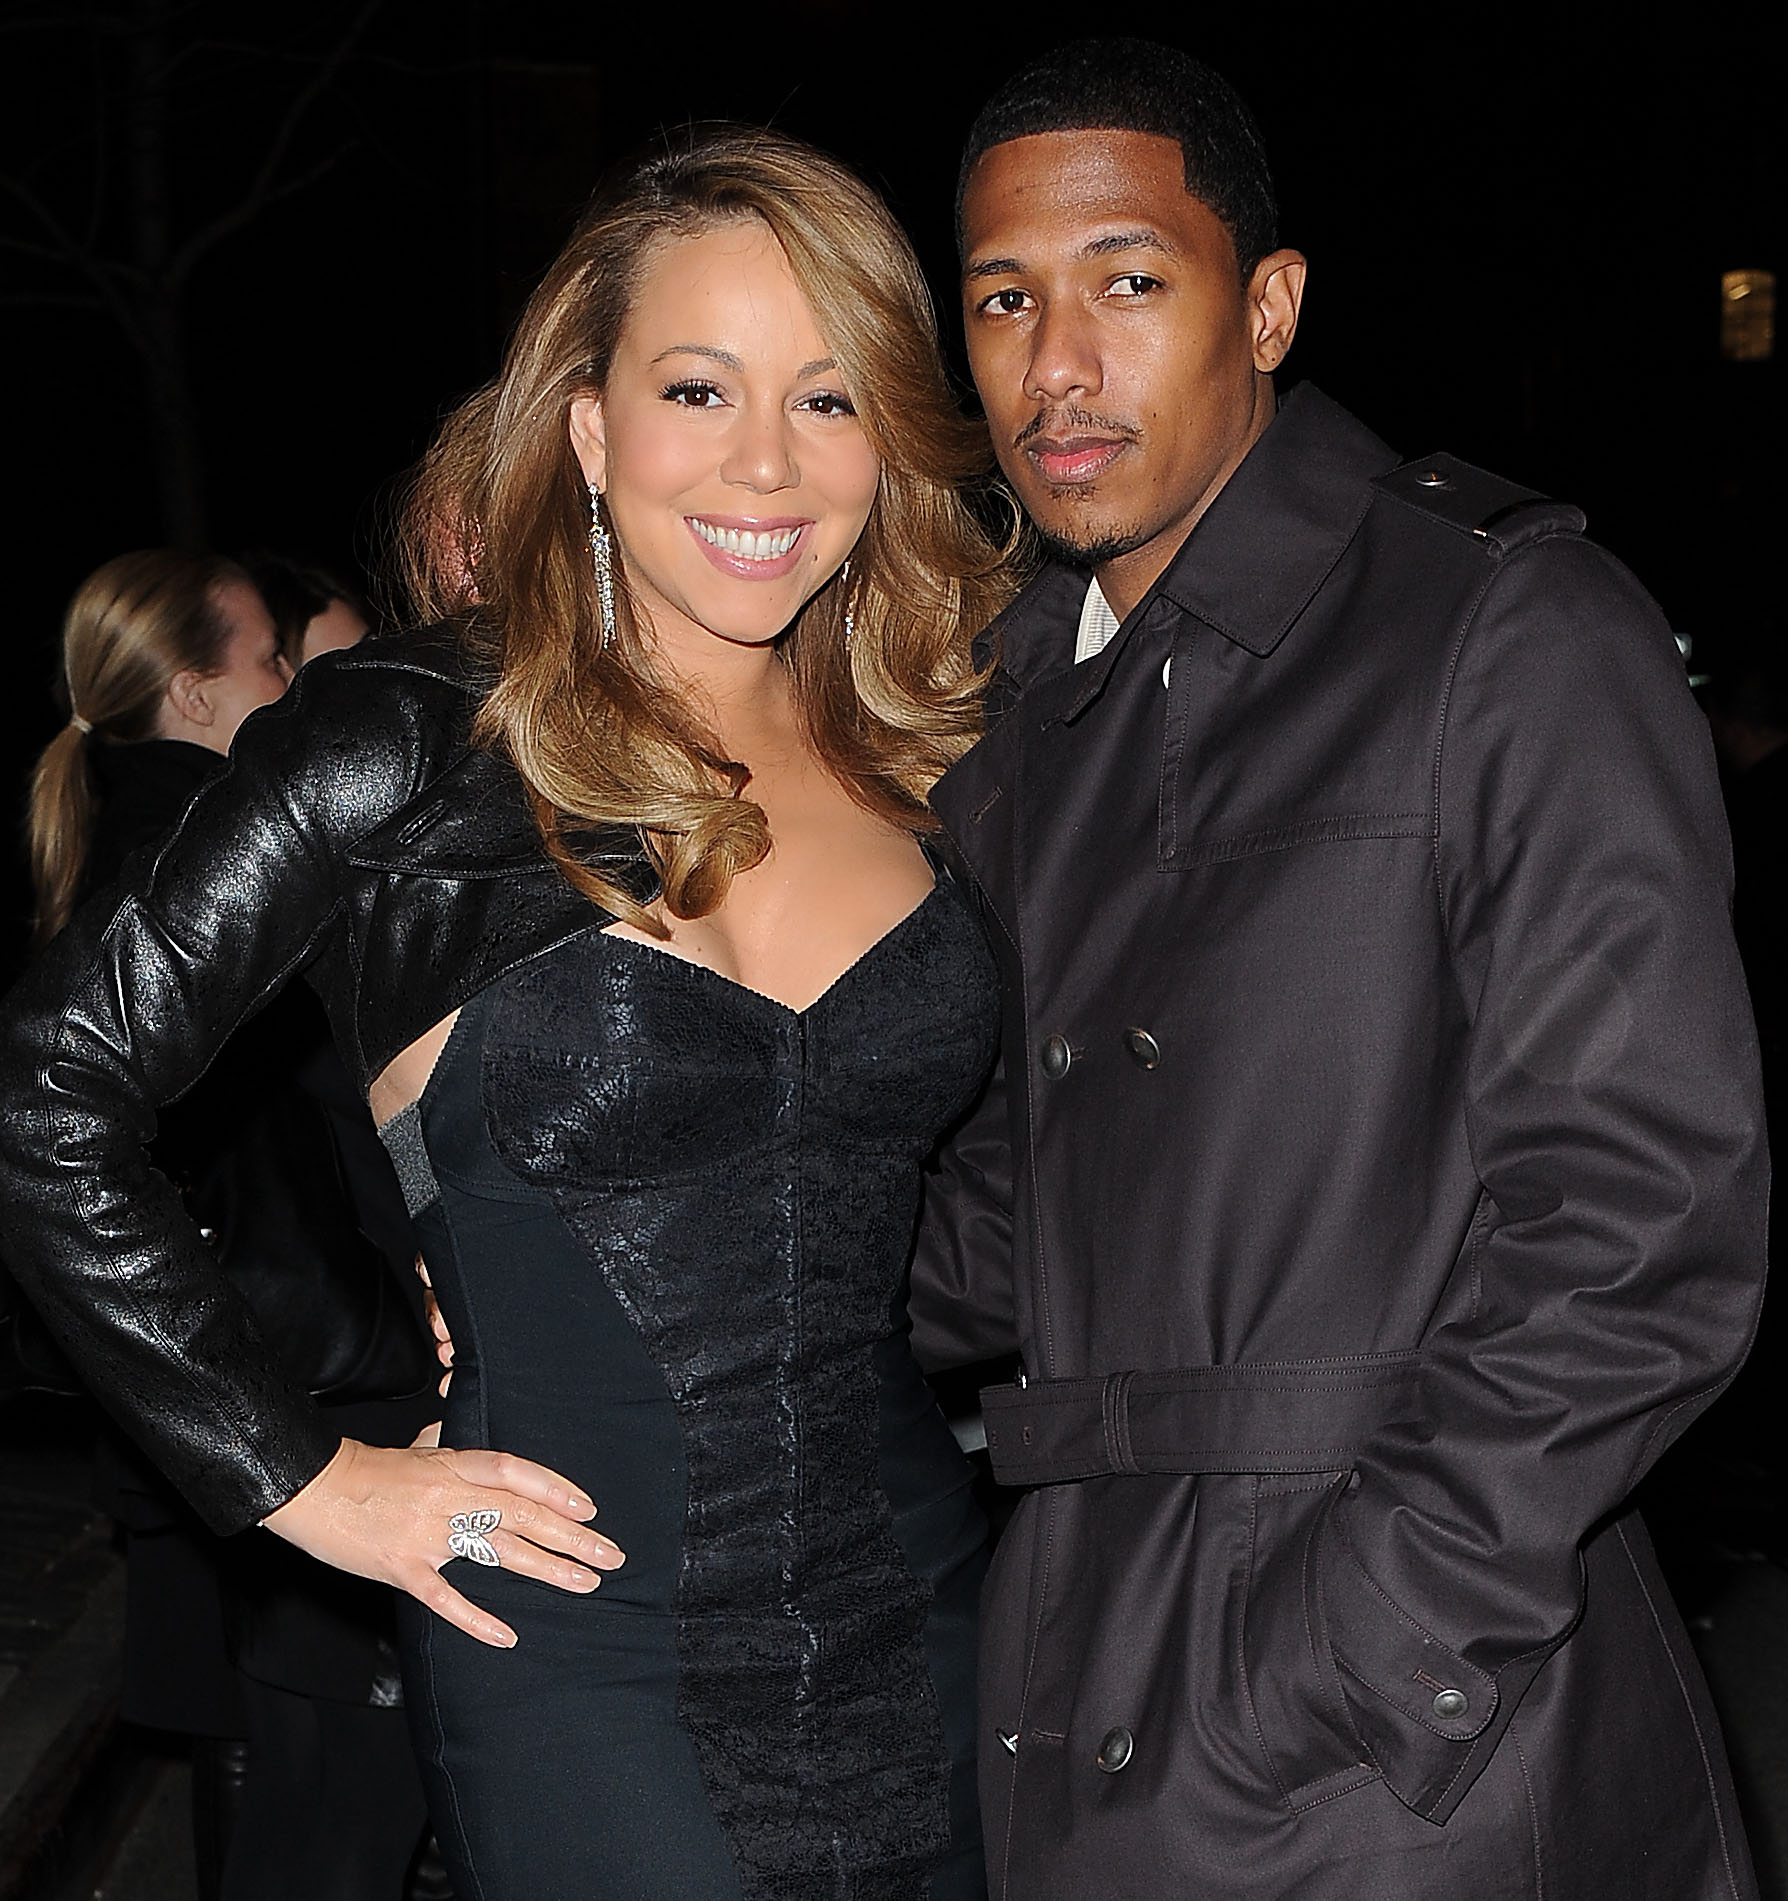 Mariah Carey and Nick Cannon VEVO launch at Skylight Studio, New York, America - 08 Dec 2009,Image: 231957558, License: Rights-managed, Restrictions: , Model Release: no, Credit line: Humberto Carreno / Shutterstock Editorial / Profimedia